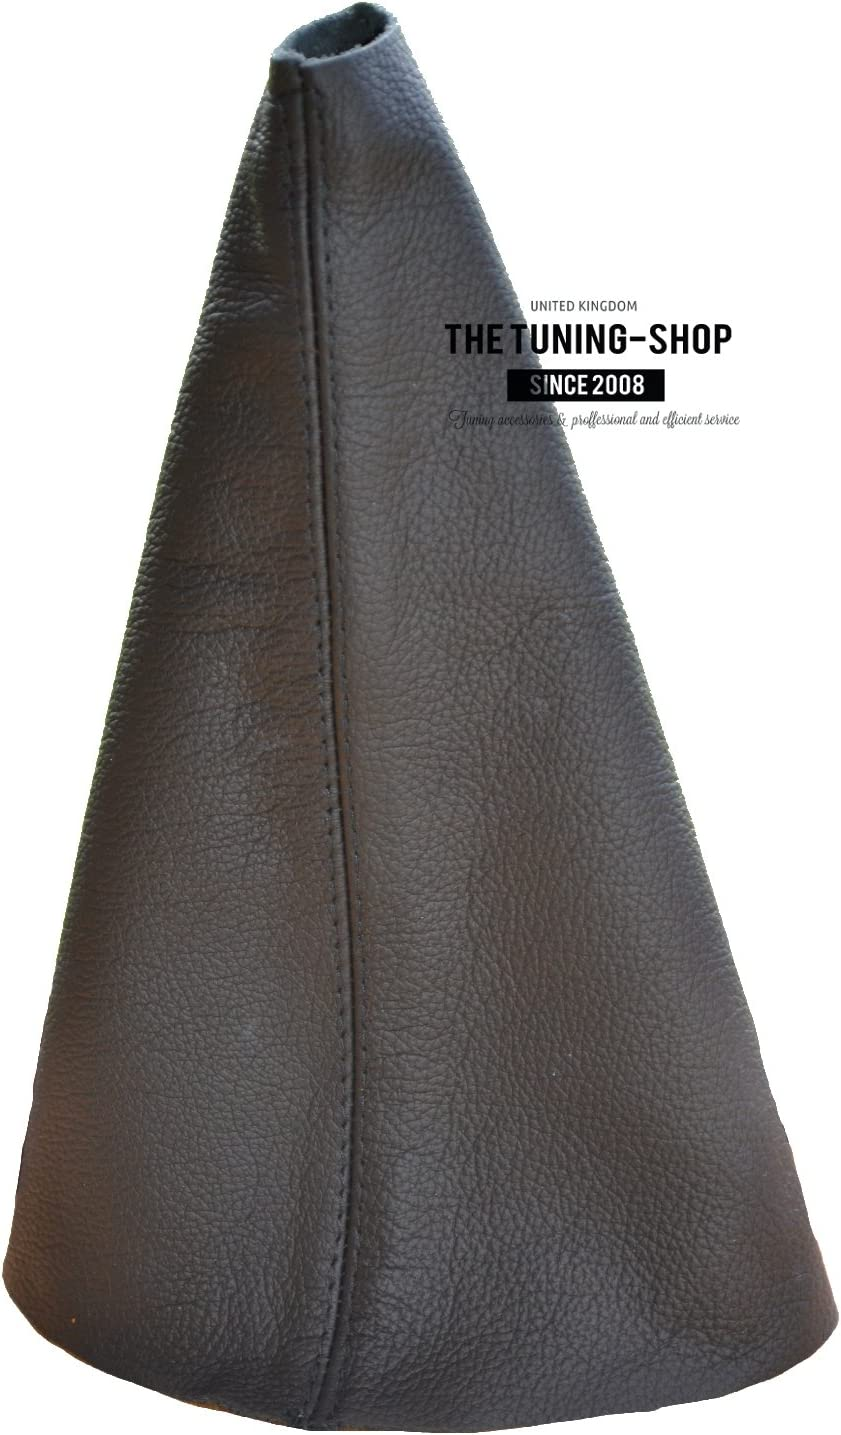 The Tuning-Shop Ltd Manual Gear Gaiter Black Leather